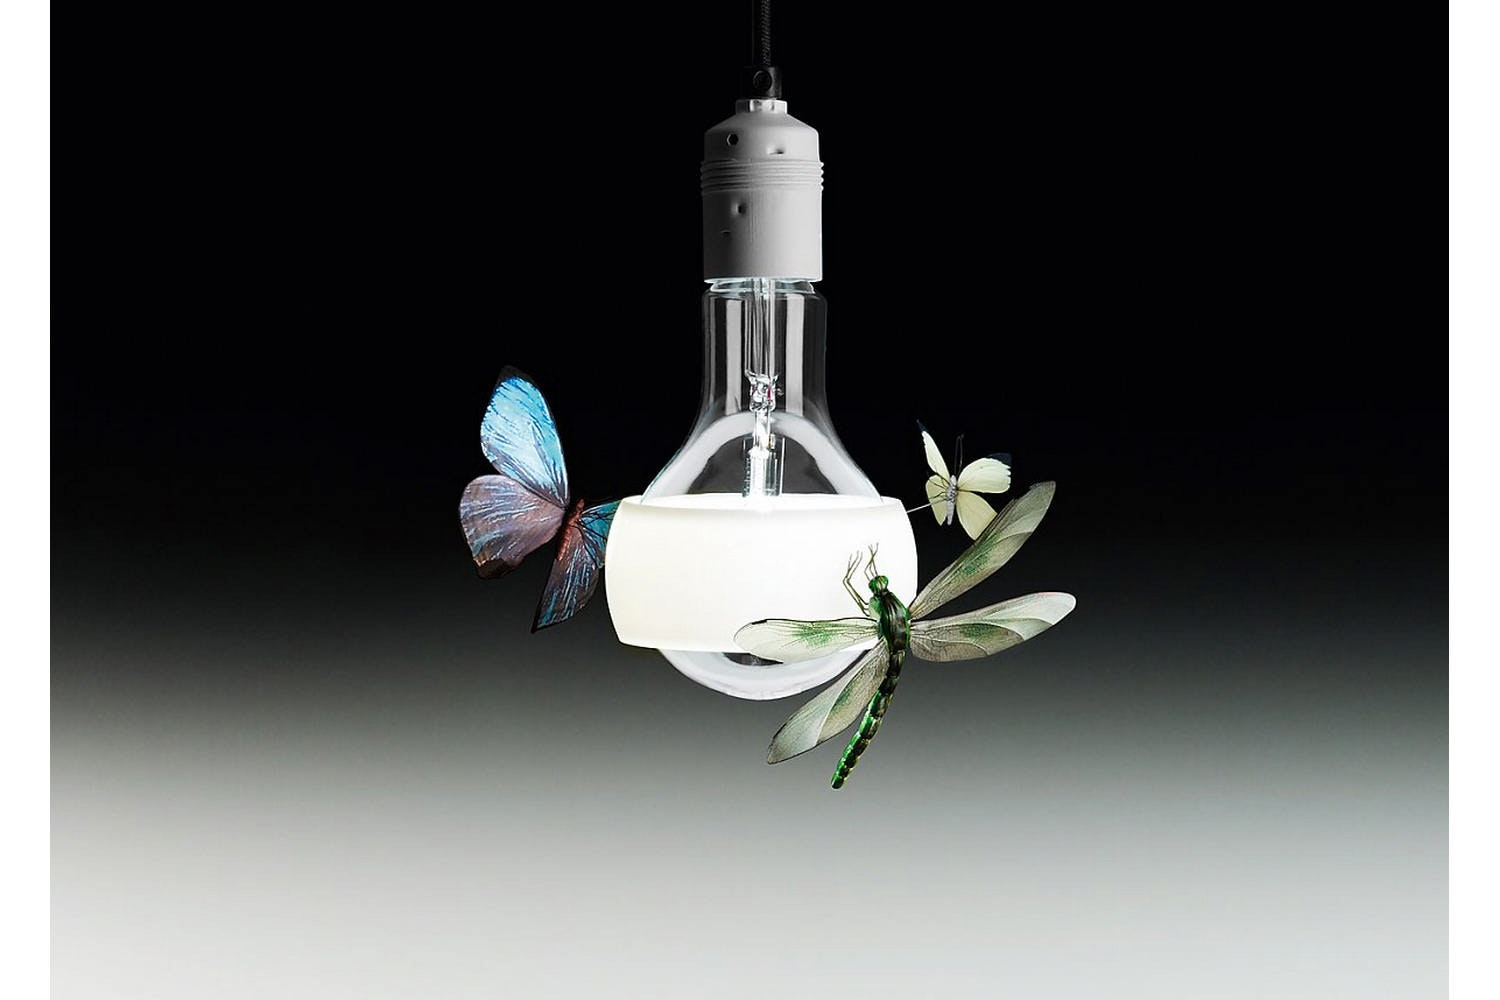 Johnny B. Butterfly Suspension Lamp by Ingo Maurer for Ingo Maurer